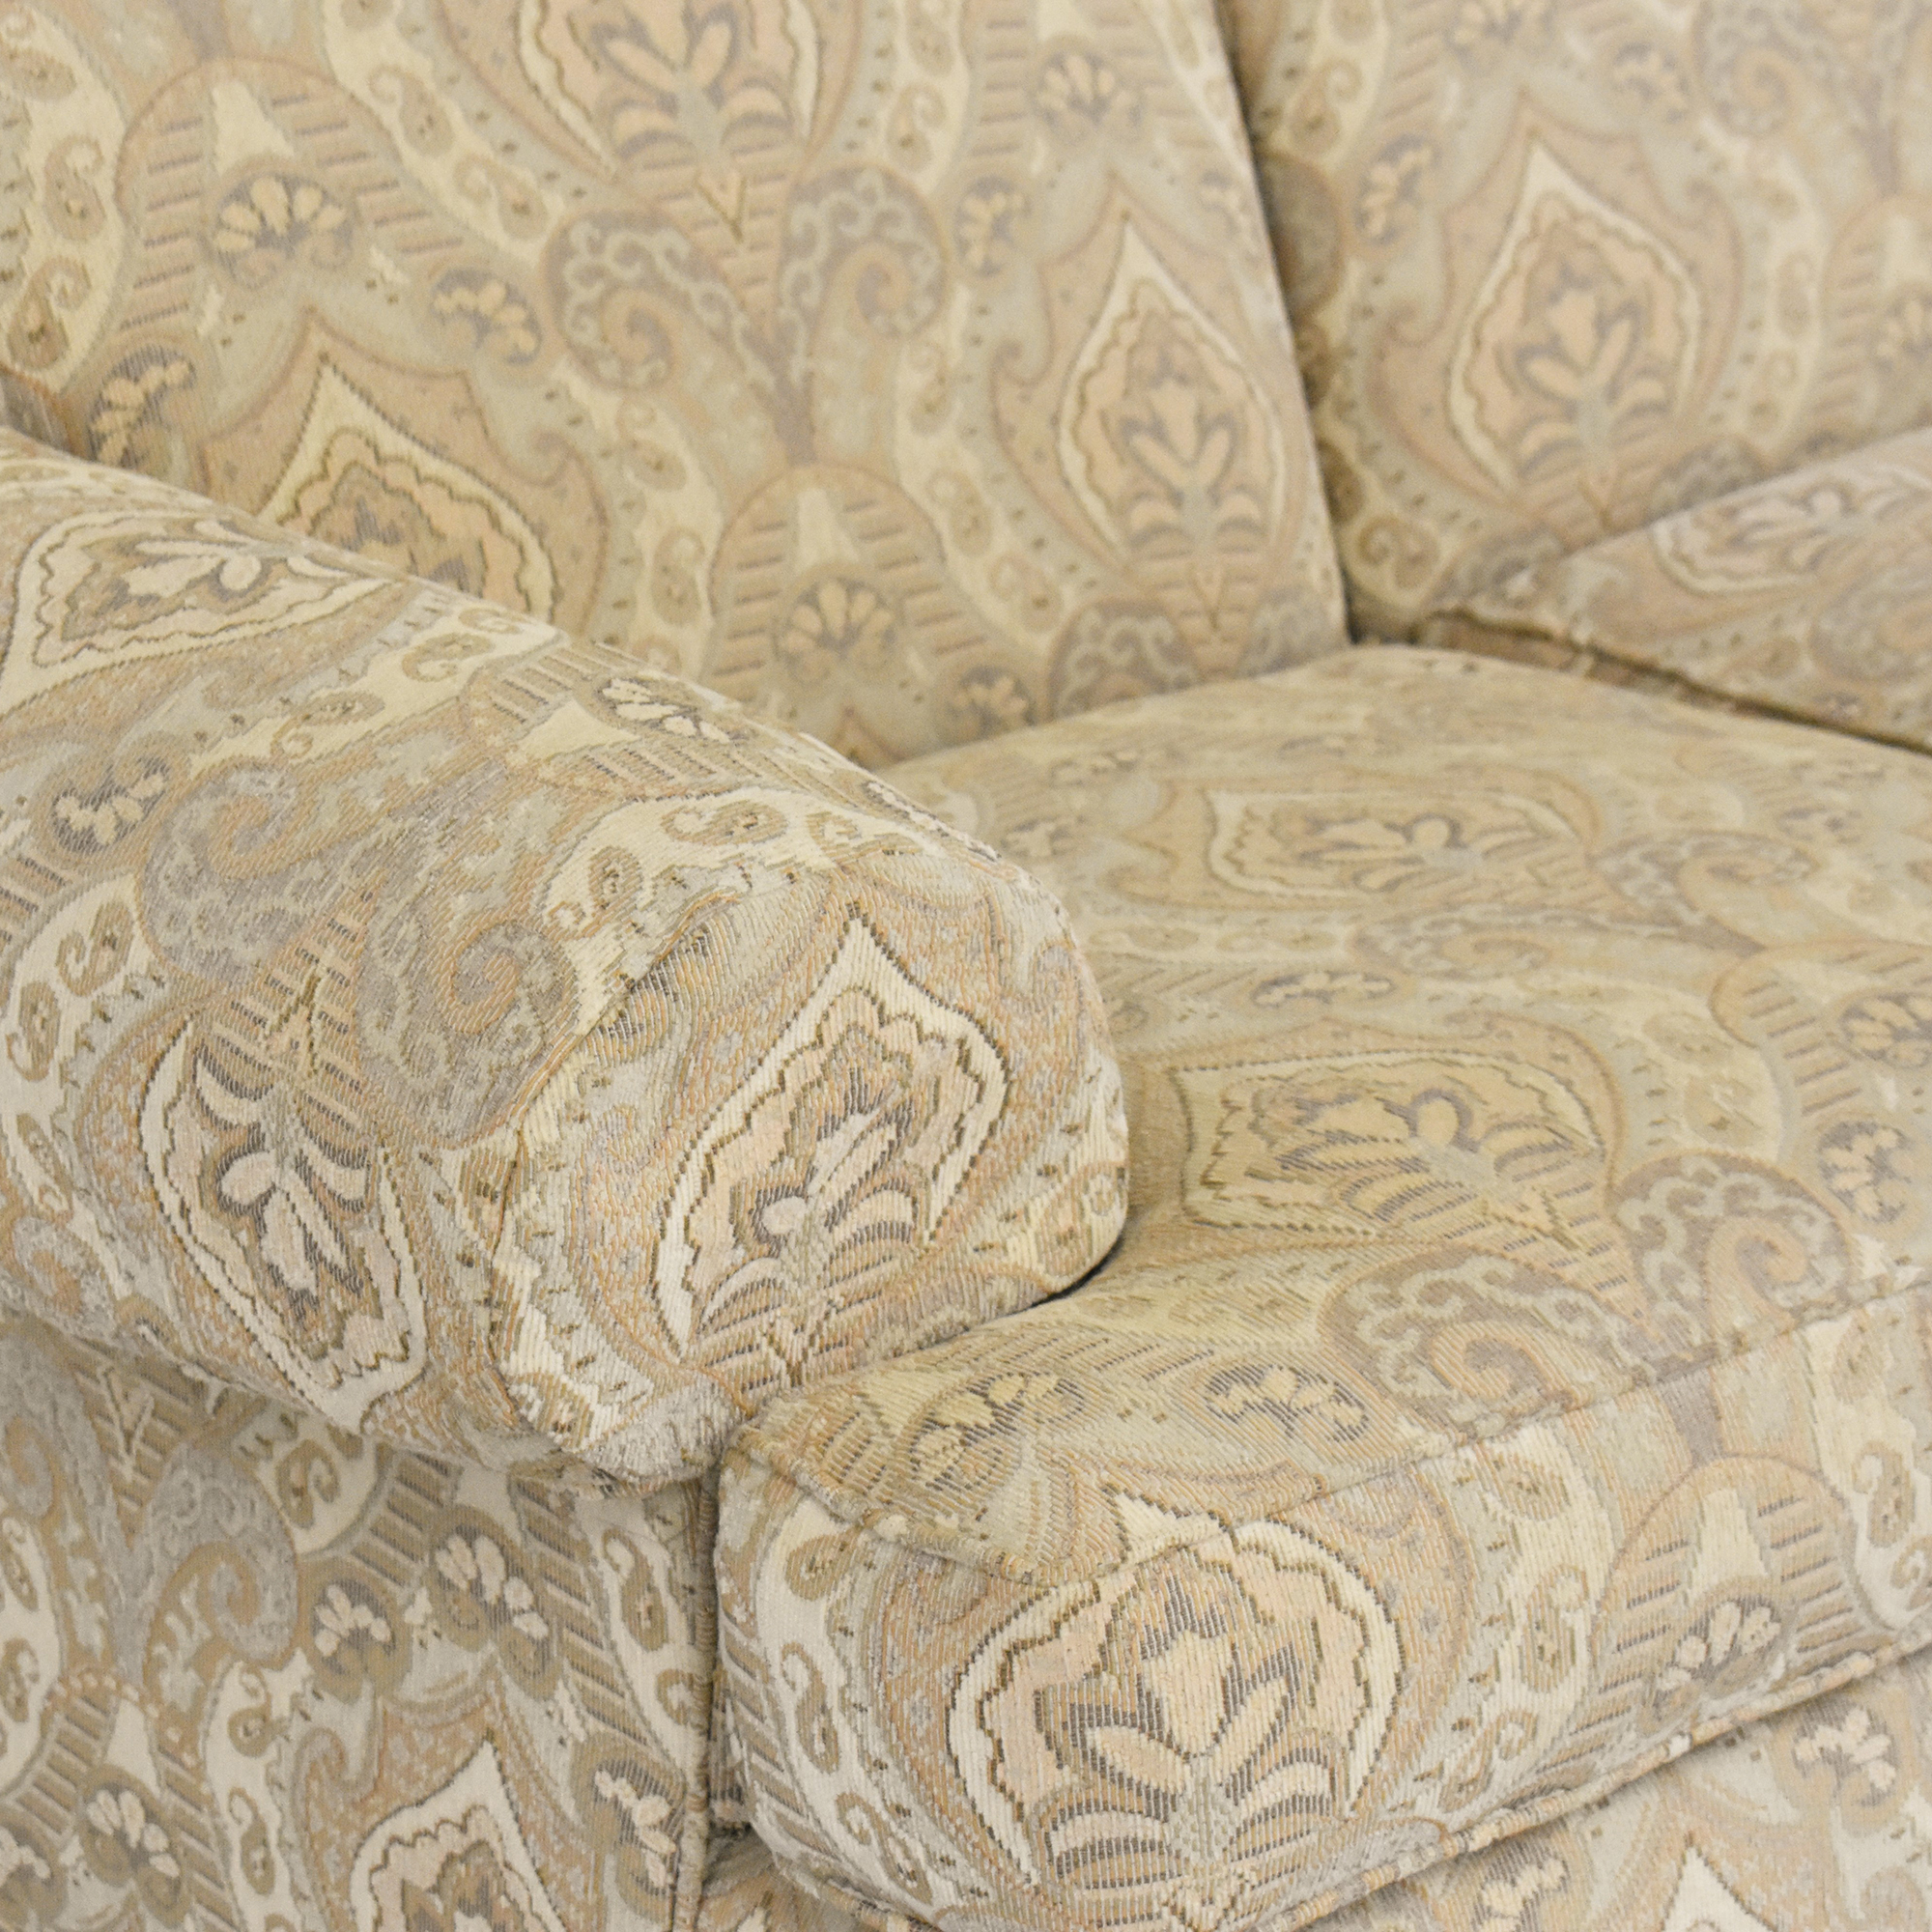 Ethan Allen Ethan Allen Patterned Roll Arm Sofa used